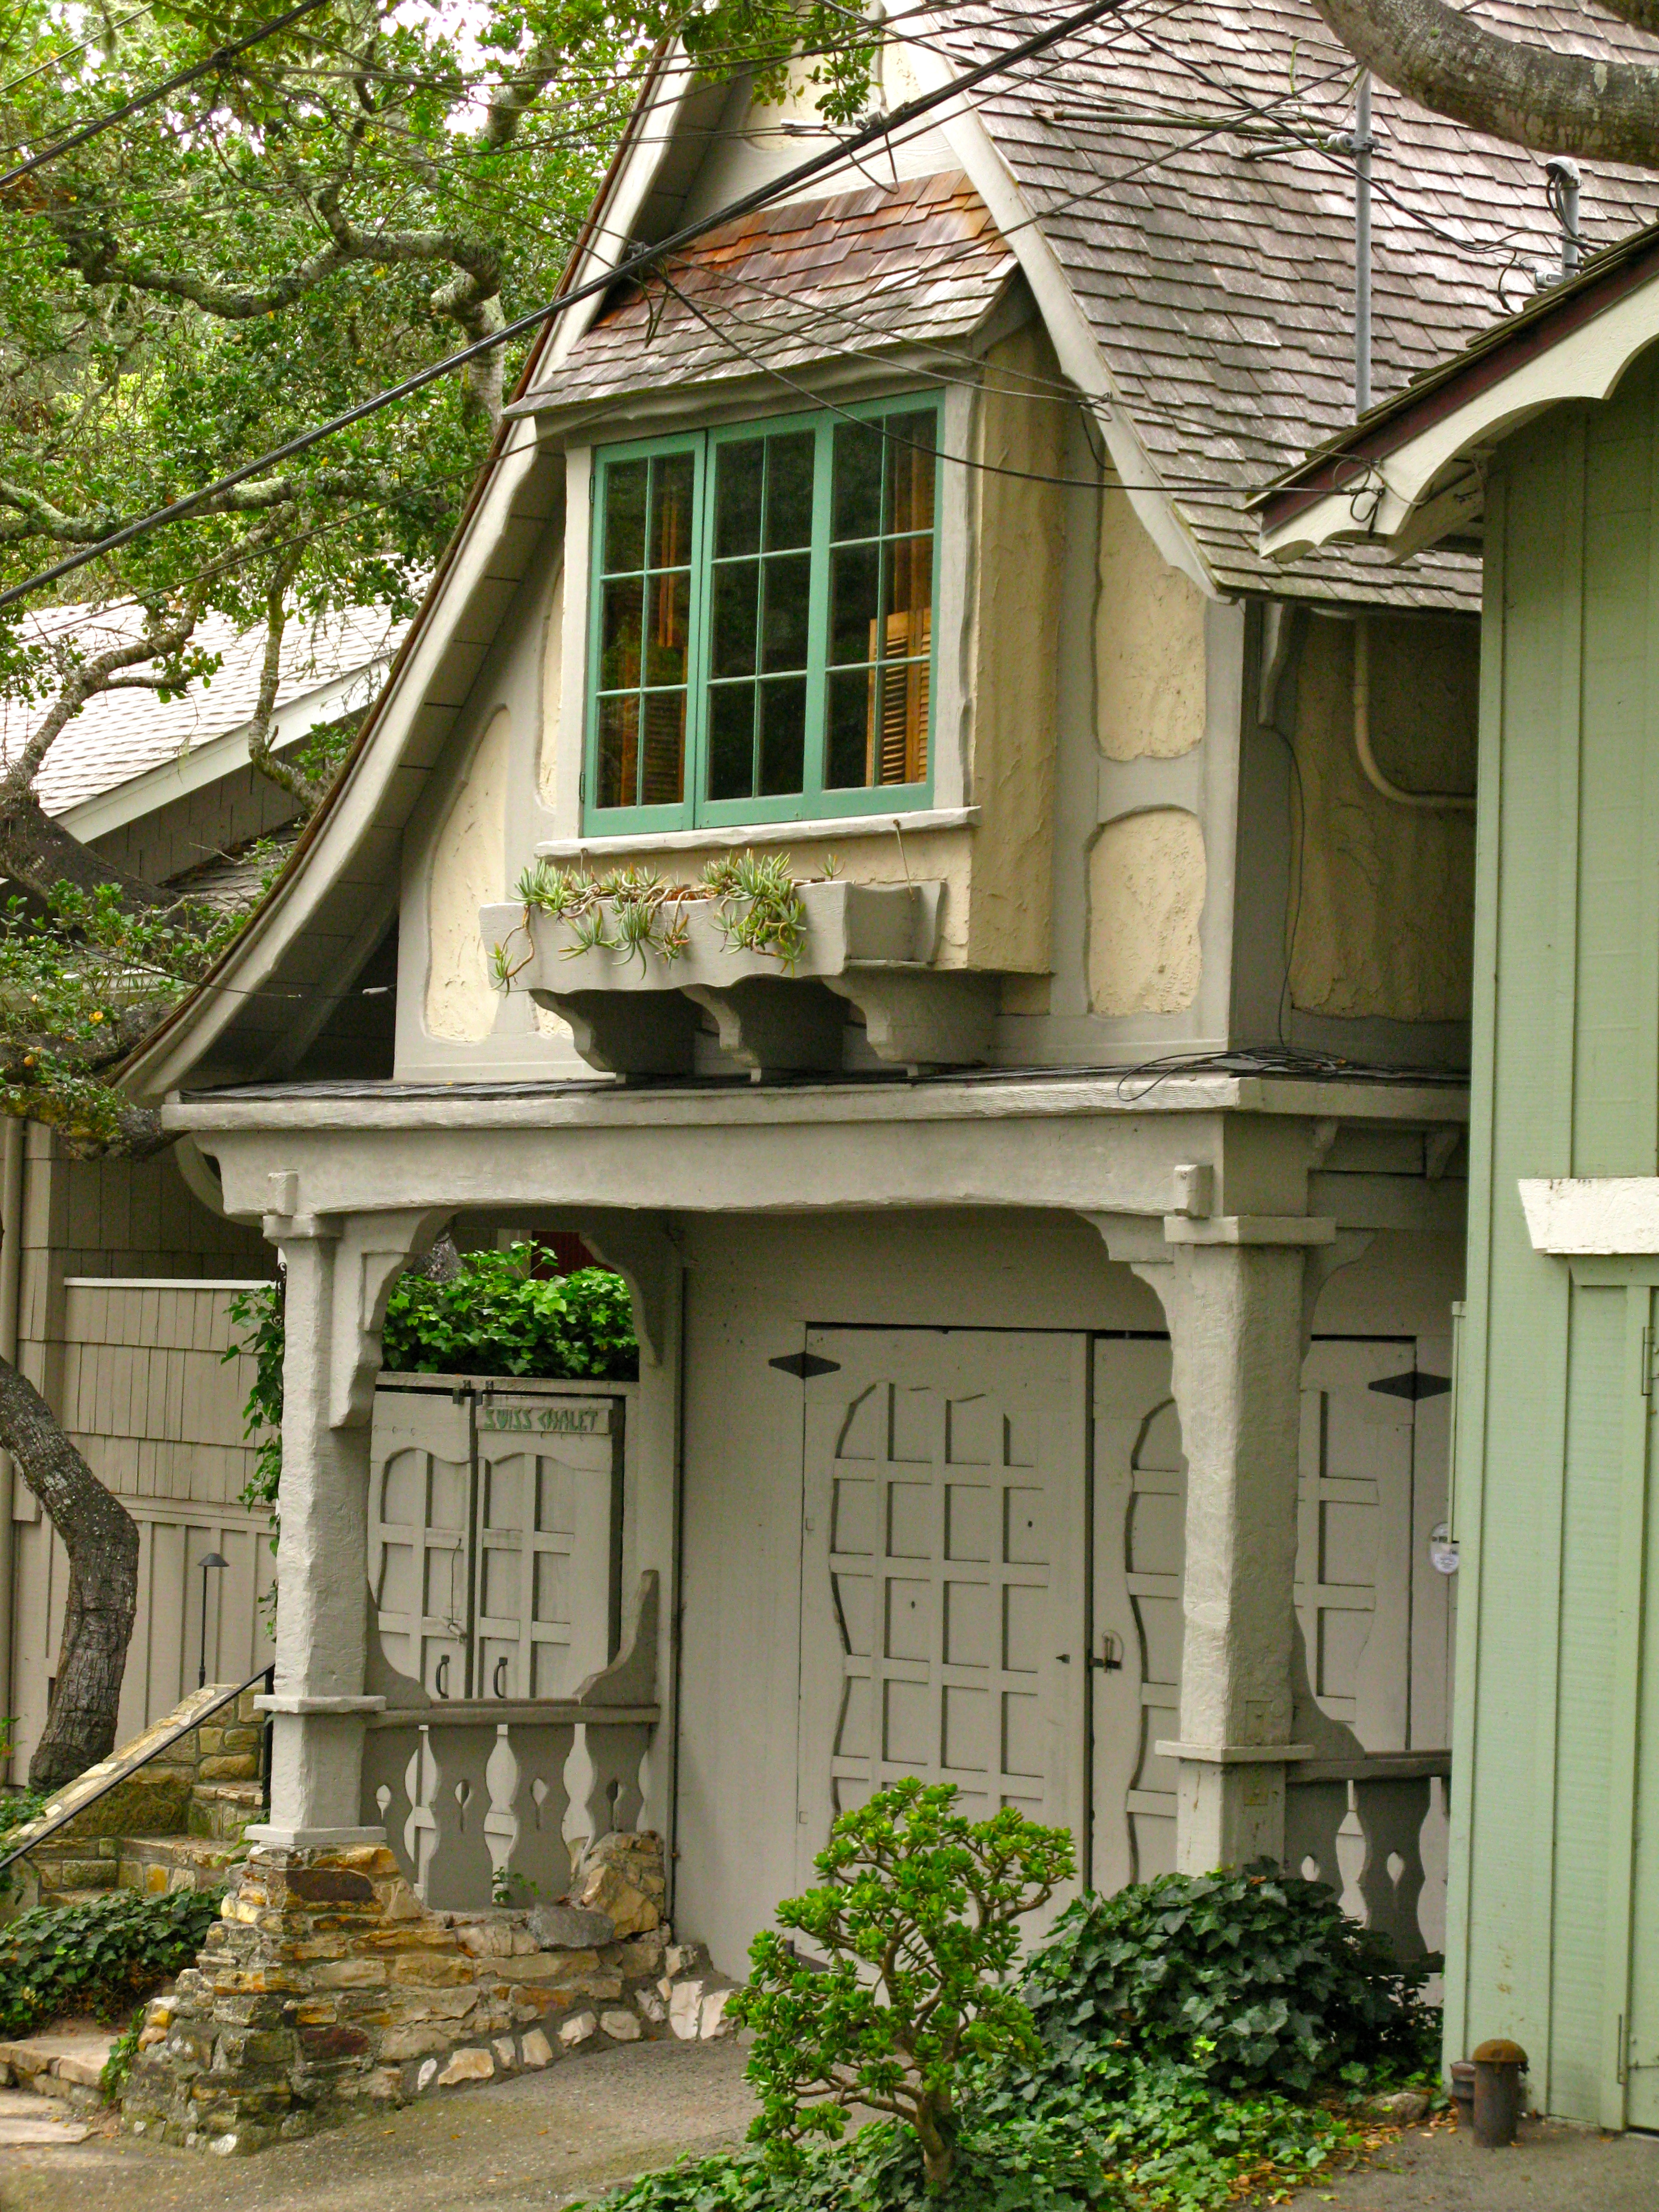 Hugh comstock s swiss chalet a fairytale cottage in for Swiss homes